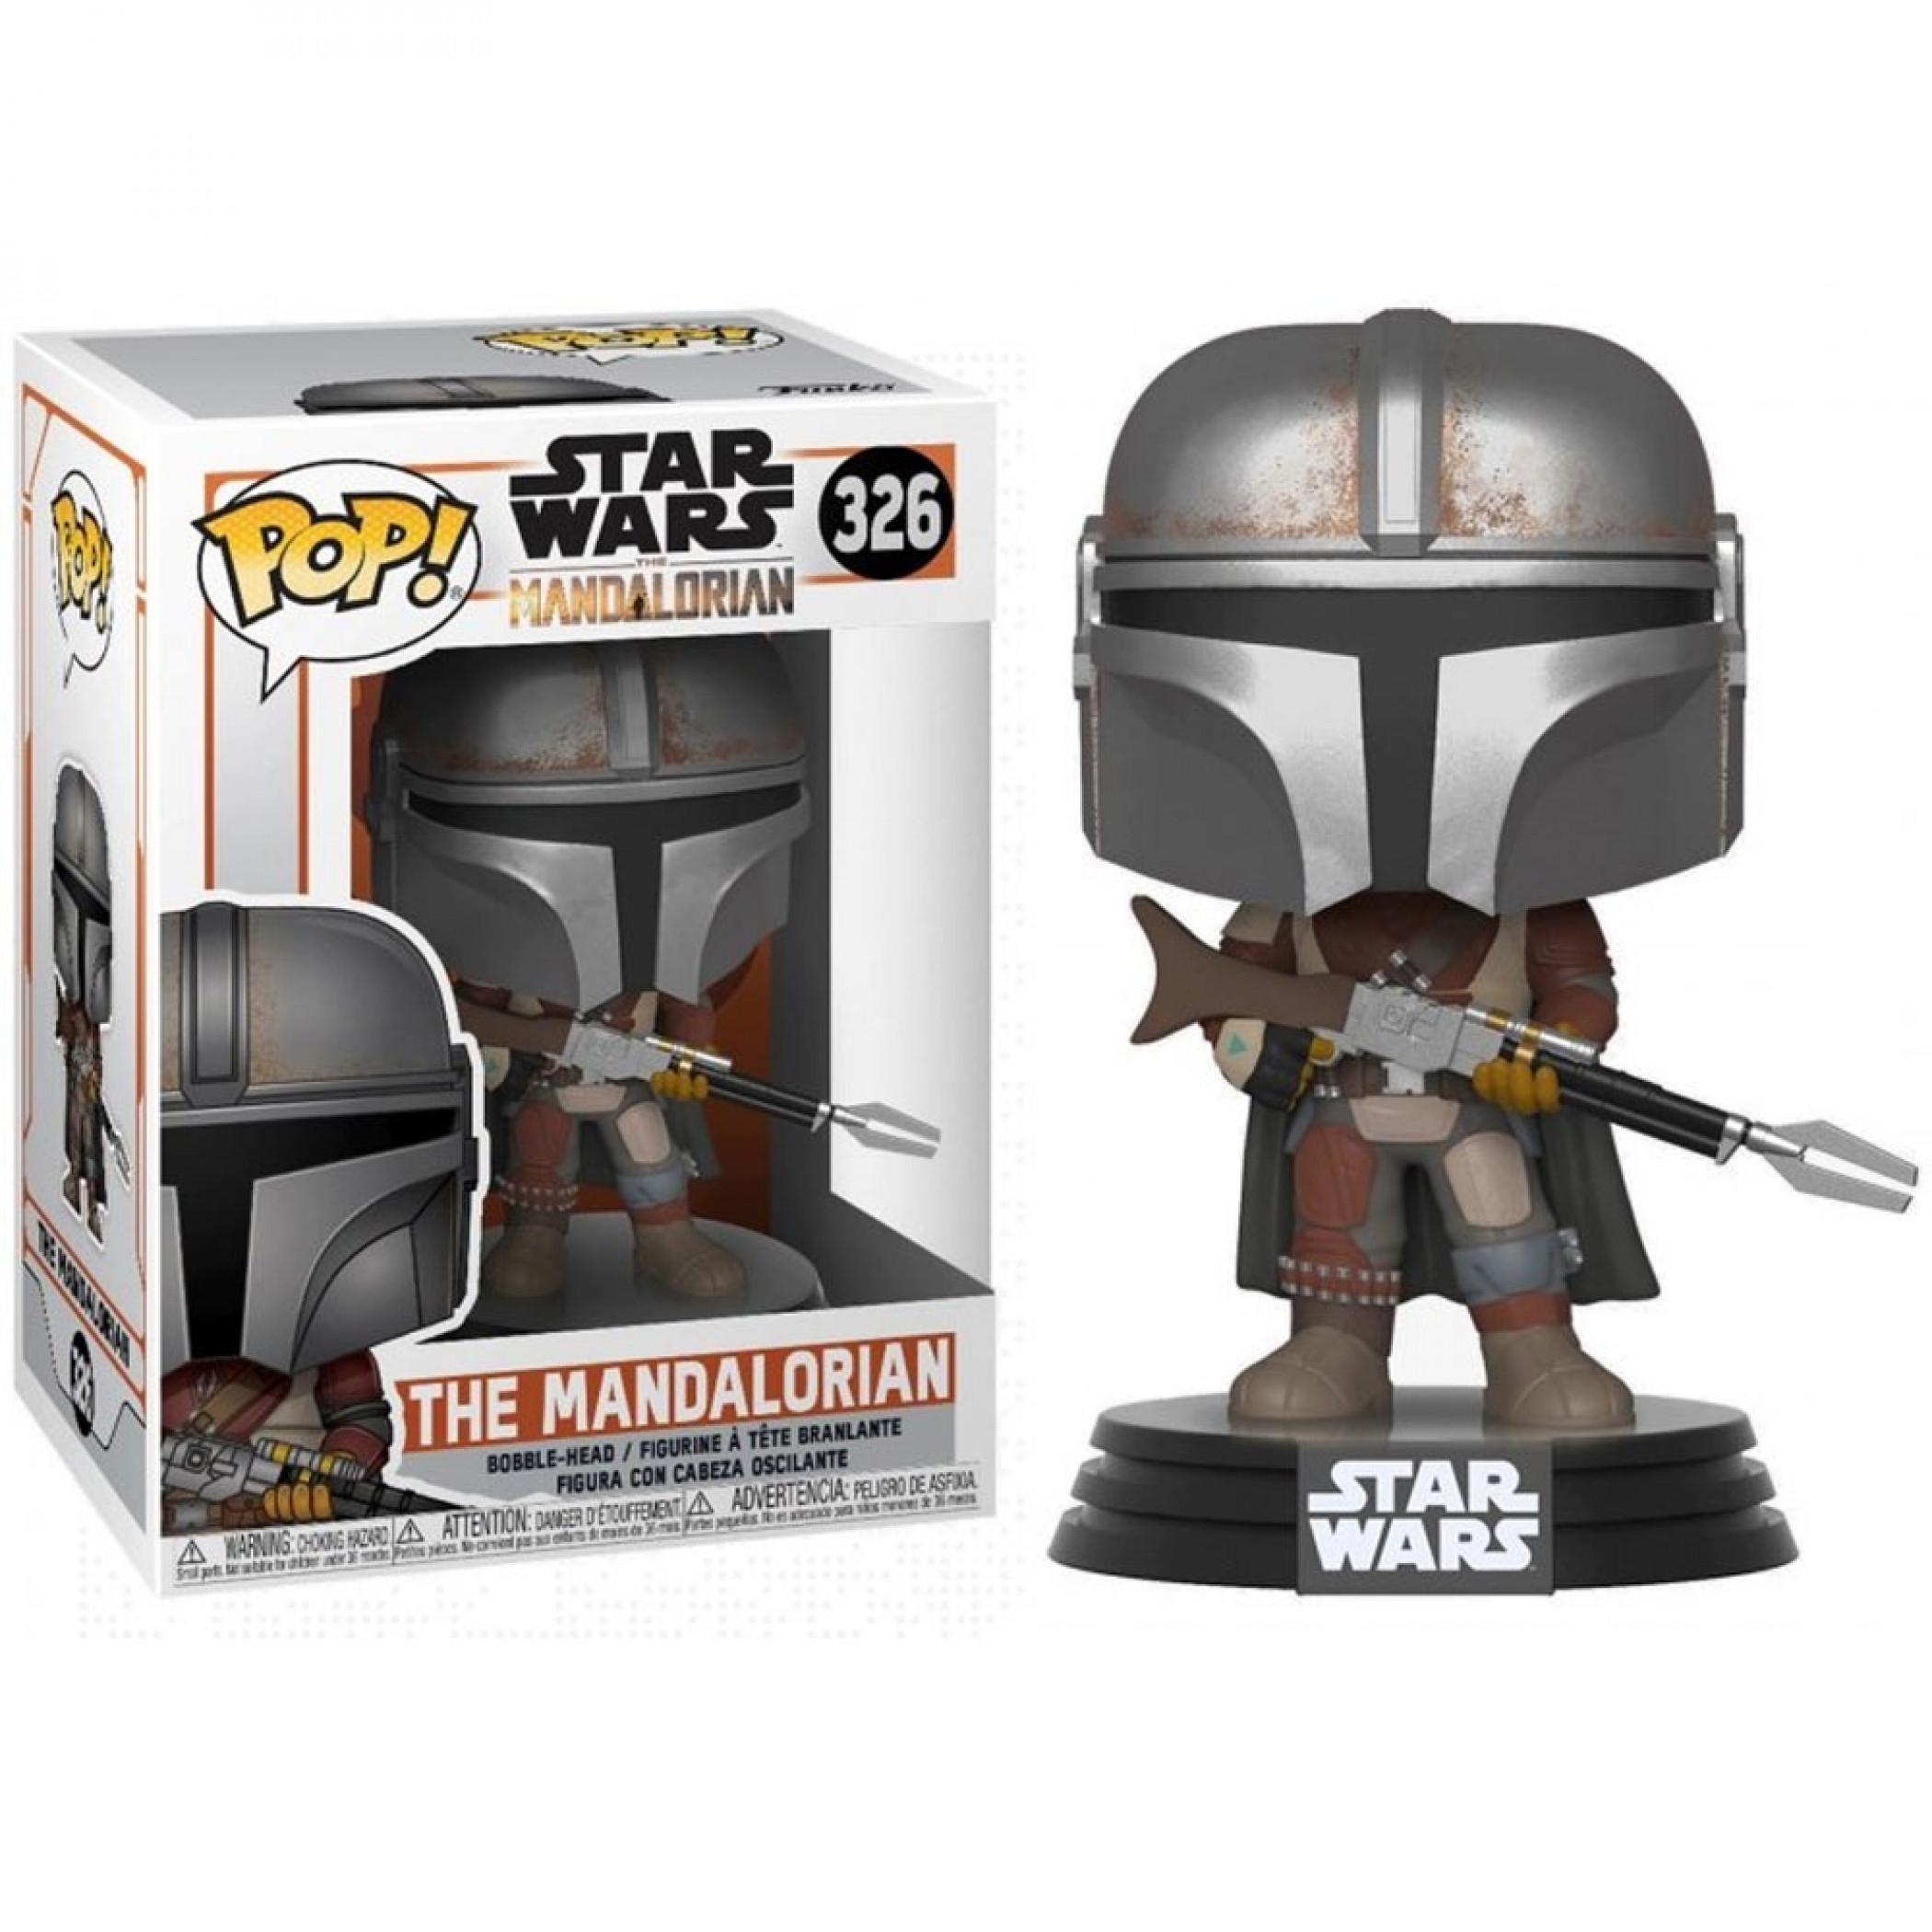 The Mandalorian - Star Wars: The Mandalorian Pop!